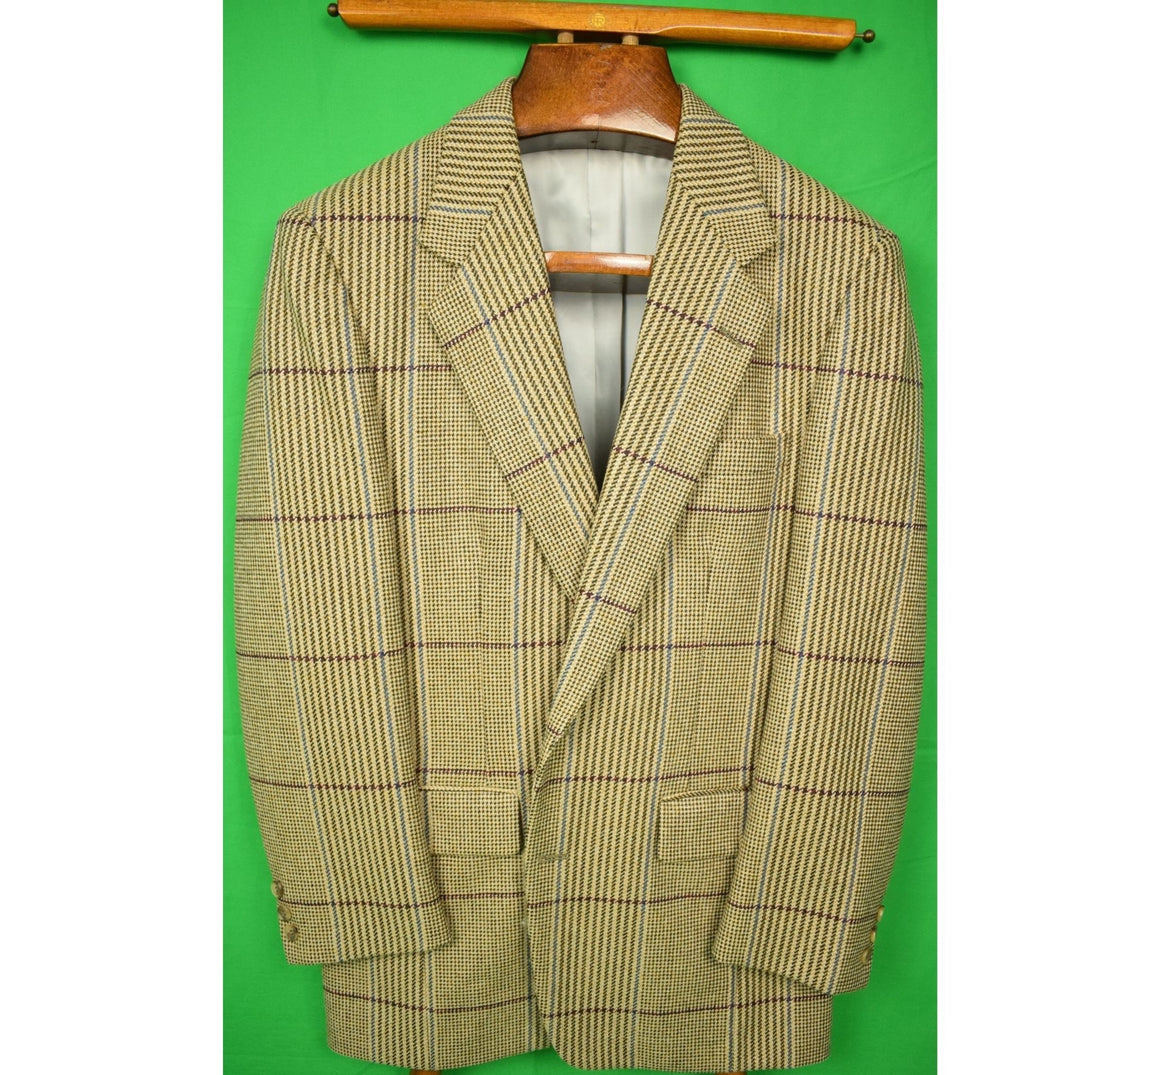 The Andover Shop Scottish Cheviot Russell Plaid Tweed Sz 40R